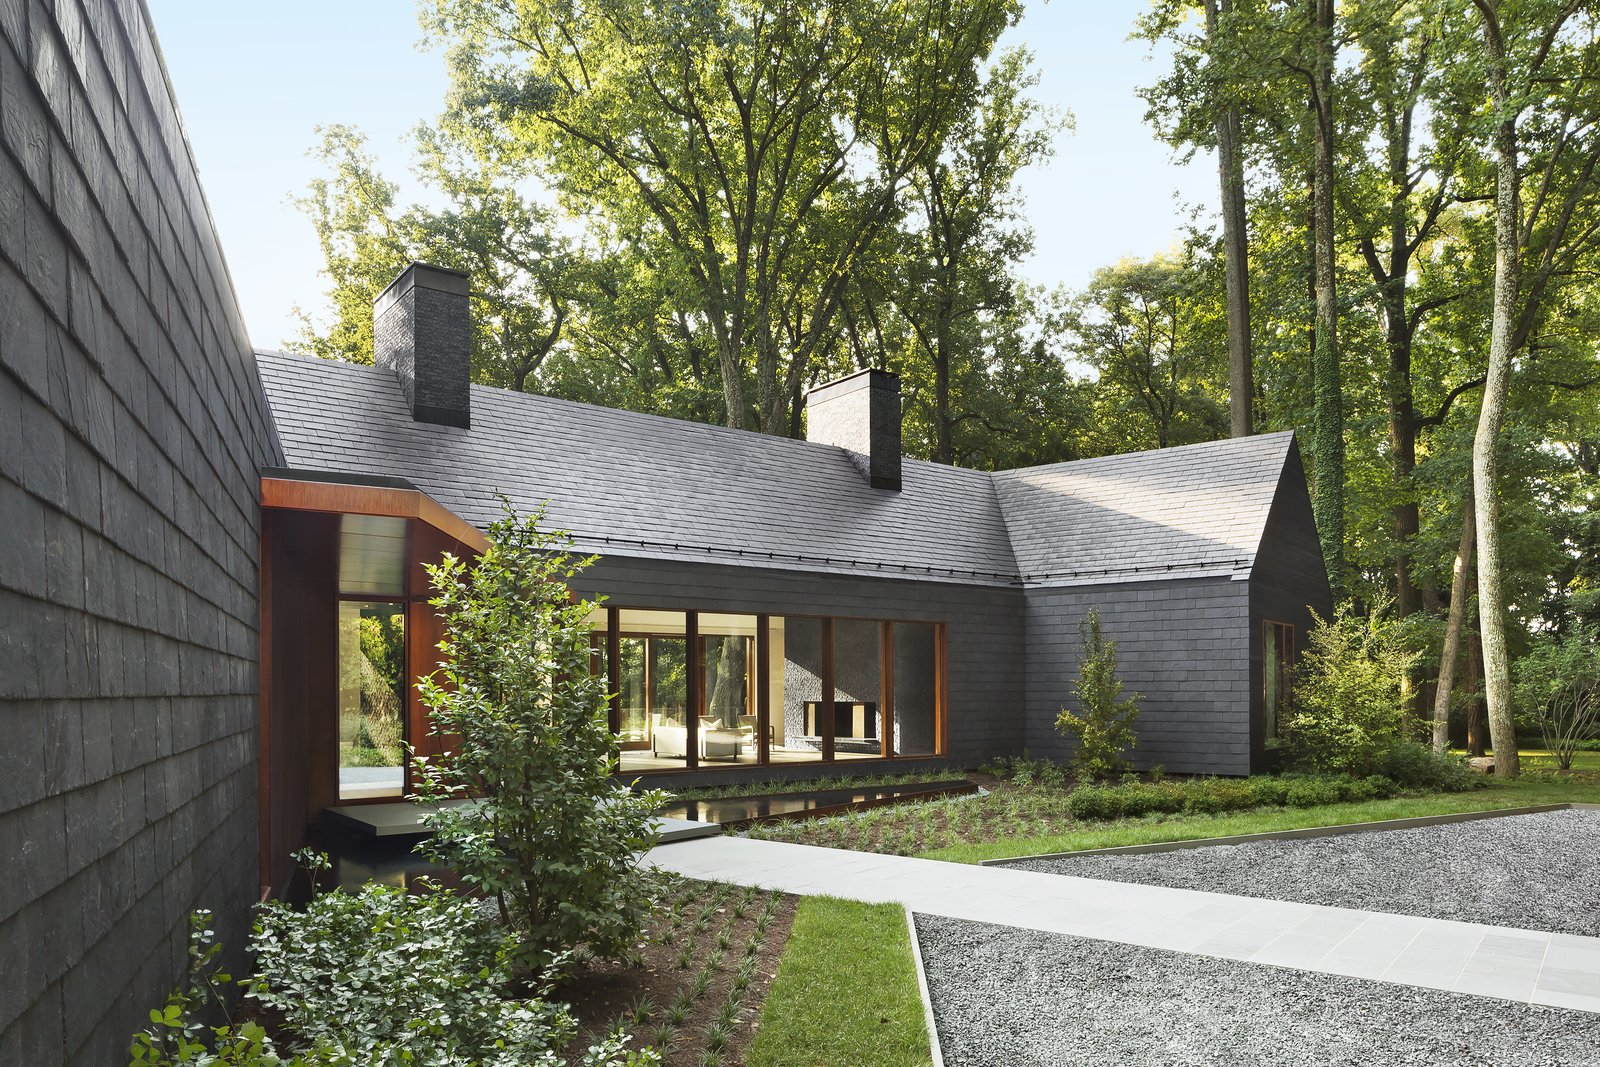 Exterior, House Building Type, Gable RoofLine, Wood Siding Material, and Shingles Roof Material When Marlene and E. Dale Adkins's home of 22 years, a 1960s ranch house in Greenspring Valley, Maryland, was lost in a fire in 2013, the couple vowed to rebuild. Finished last year, their new home is covered in dark slate shingles for the sides and roof, Cor-Ten steel accents, and charred cedar for the gable fronts.  Photo 1 of 14 in After a Fire, a Maryland Couple Turn to Charred Wood to Rebuild Their House